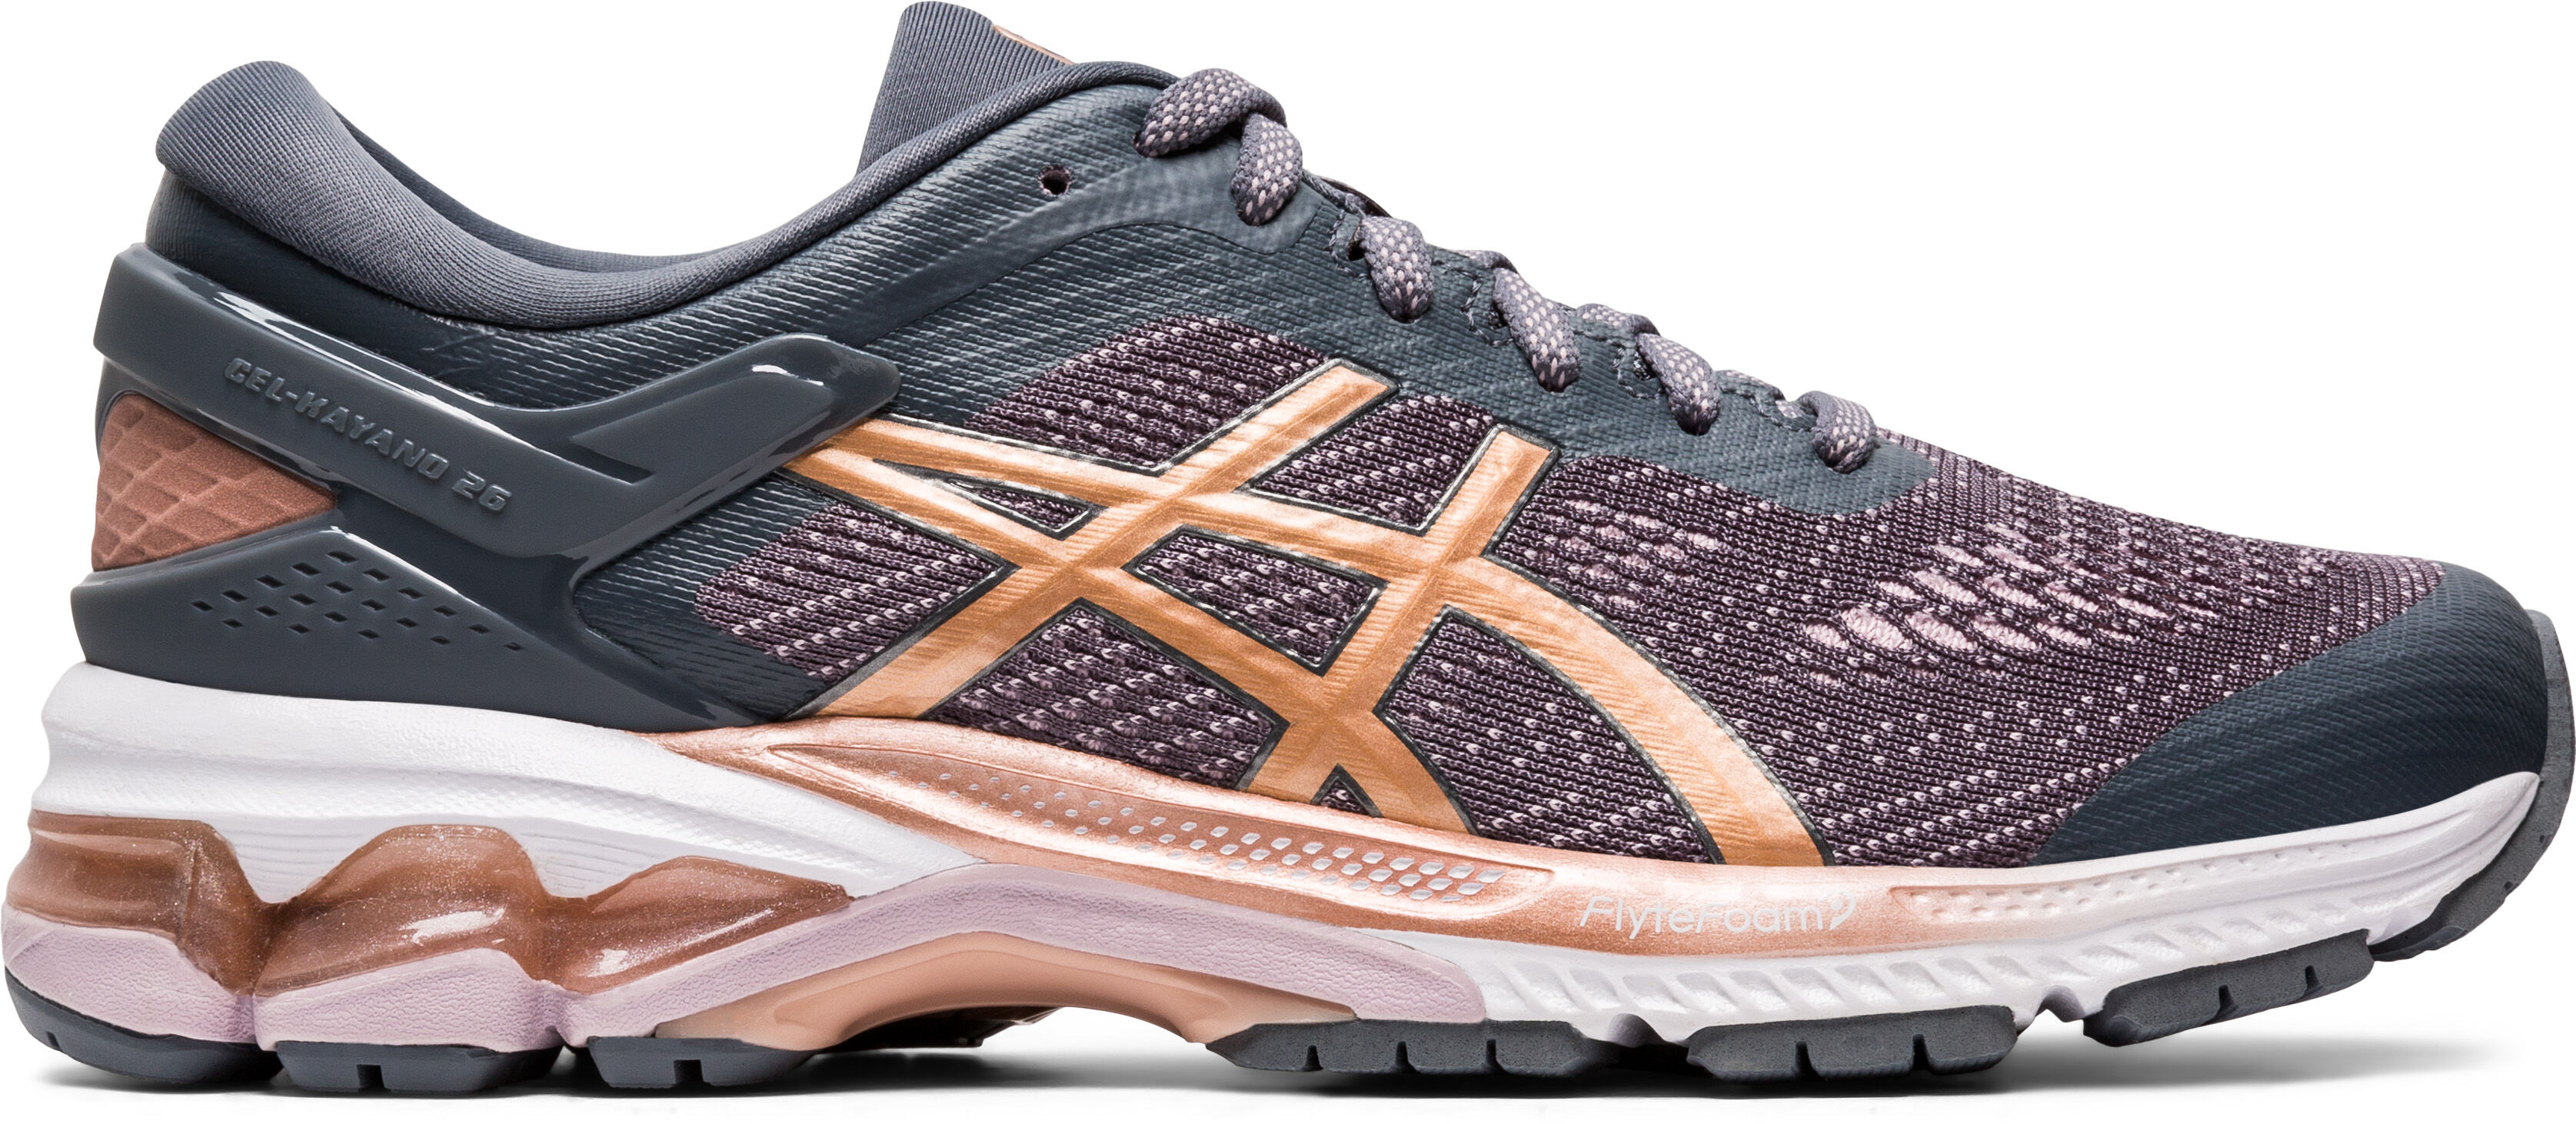 asics gel kayano 25 intersport